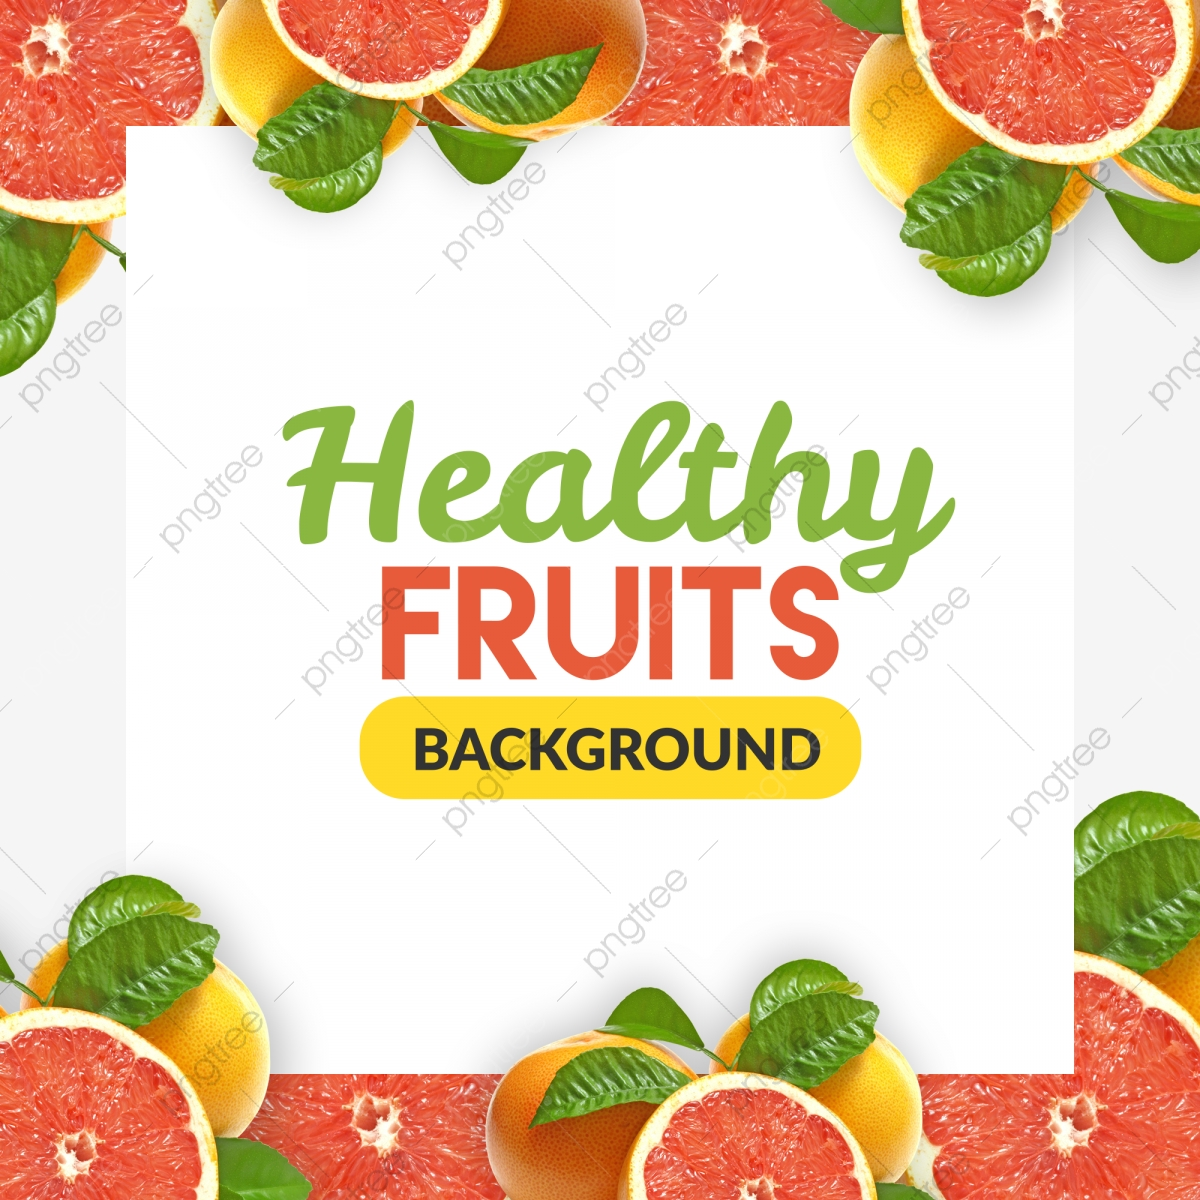 Fruit Background Png - Healthy Fruits Background, Fruit, Vector, Fruits PNG Transparent ...